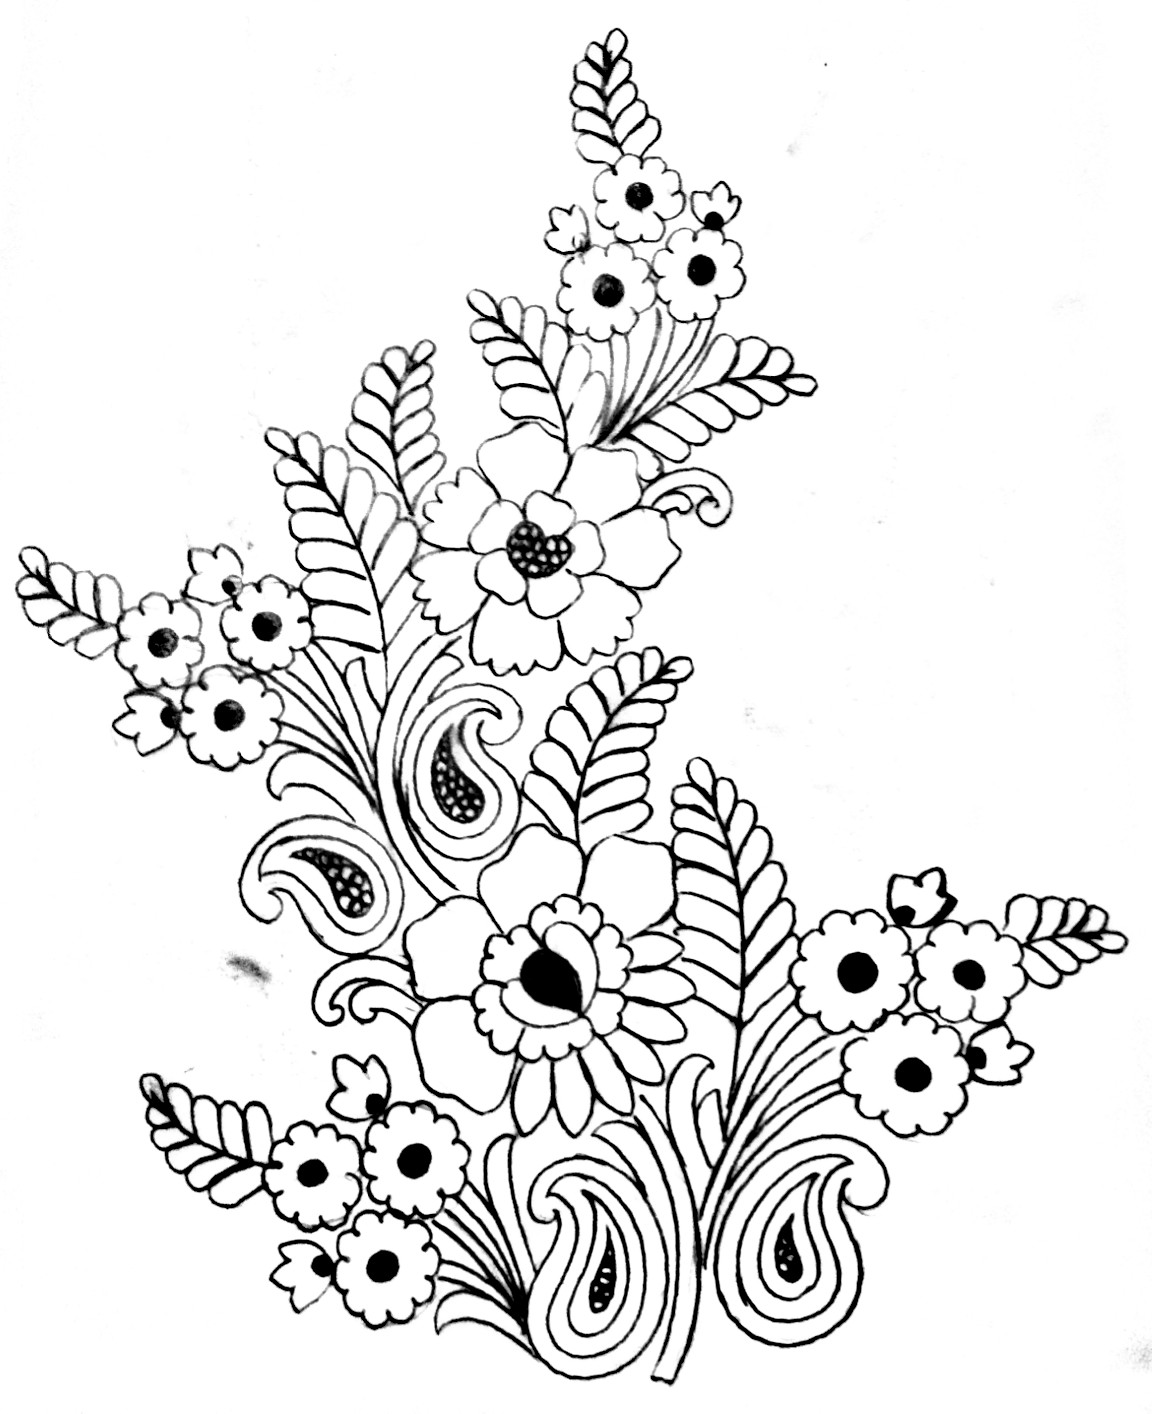 Free hand embroidery flowers design drawing. New embroidery design images free download for saree.